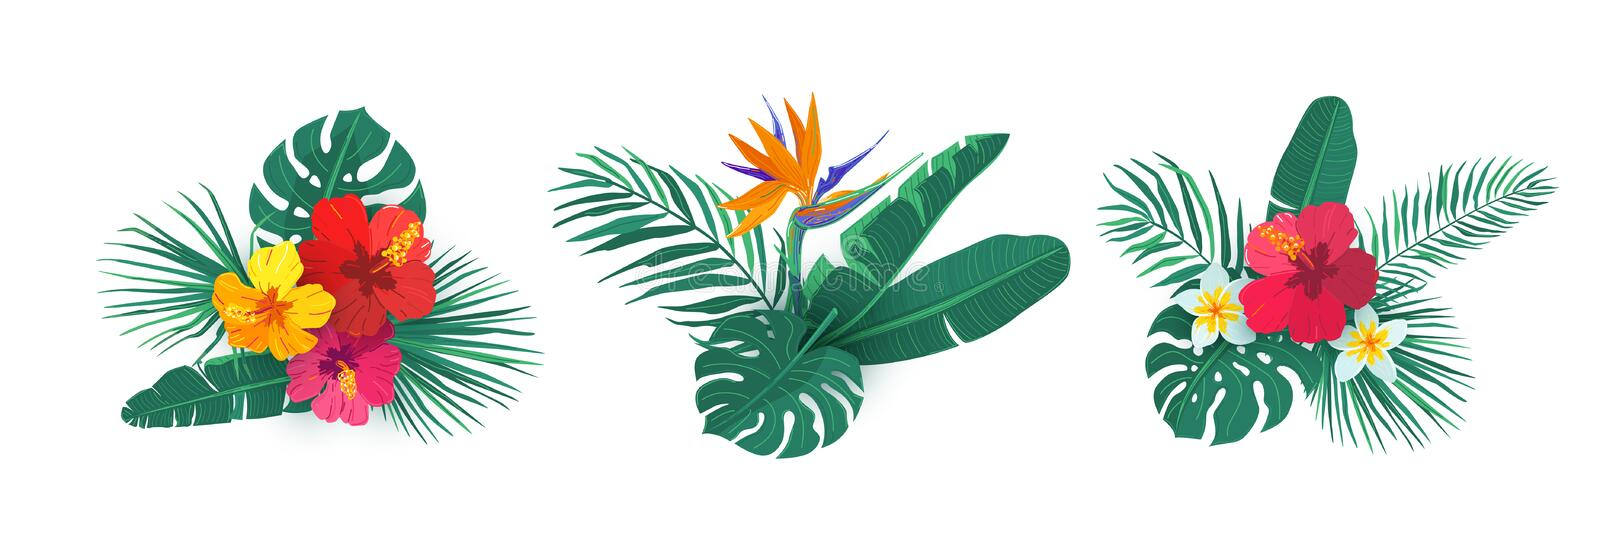 Tropical hawaii flower bouquet vector set. Composition with exotic plants in simple flat style for summer print design royalty free stock photo